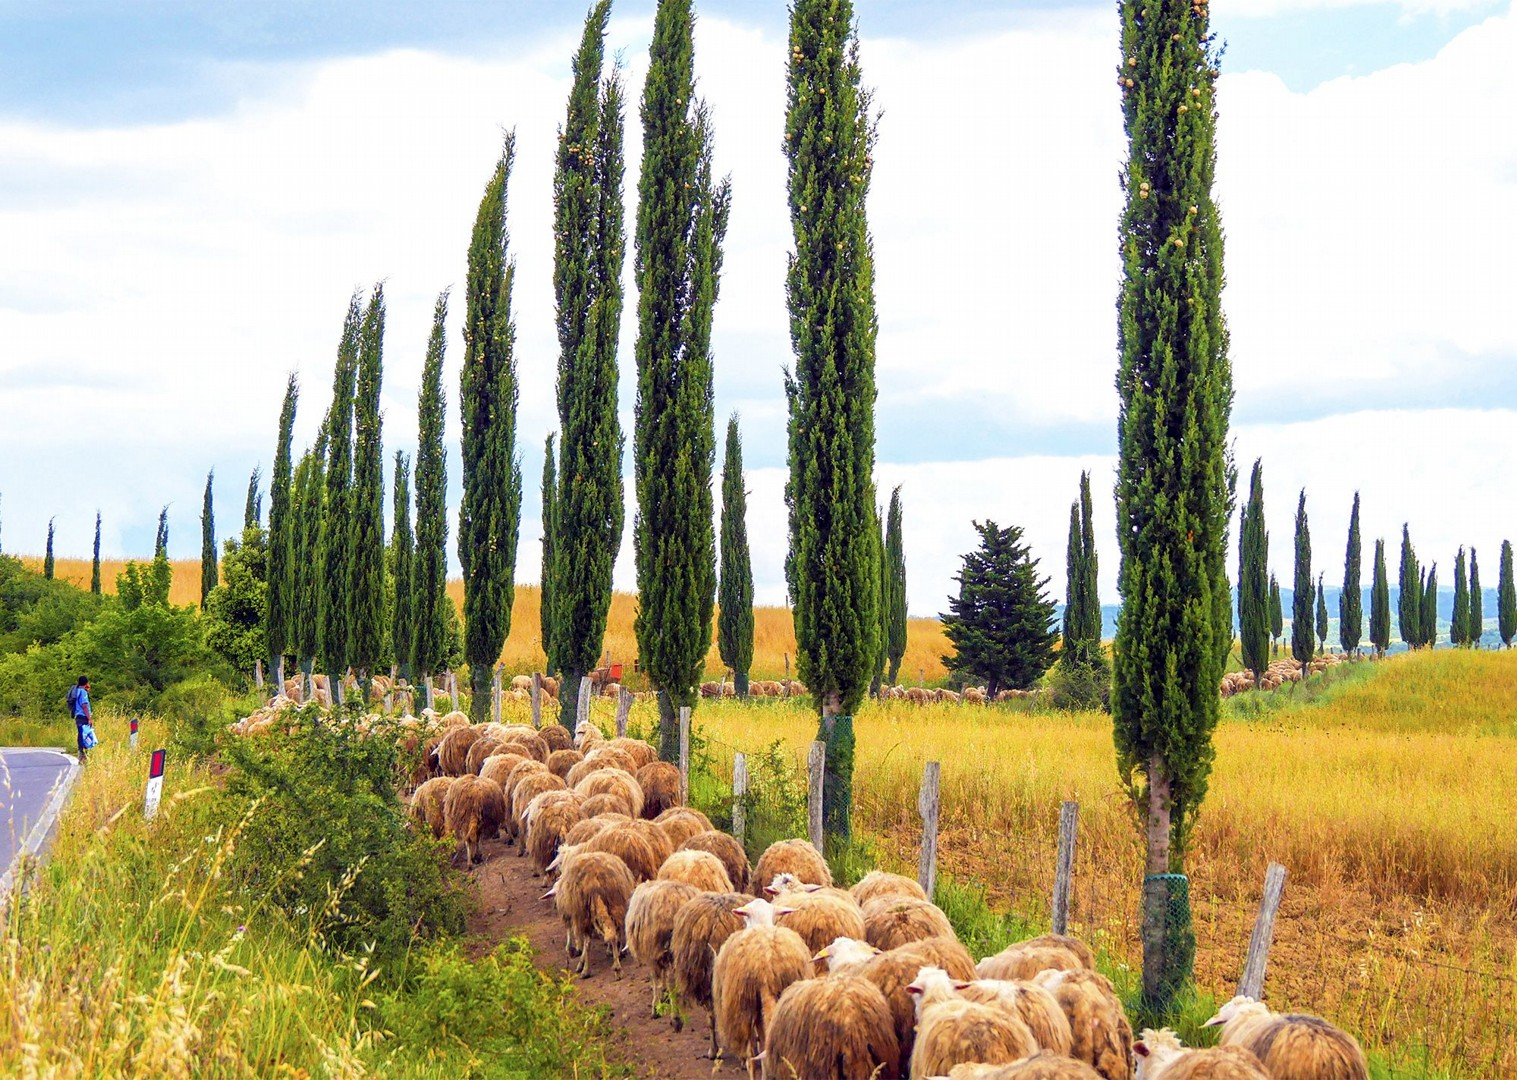 farms-and-cypress-trees-regional-life-culture-cycling-holiday-saddle-skeaddle.jpg - Italy - Classic Tuscany - Self-Guided Leisure Cycling Holiday - Leisure Cycling